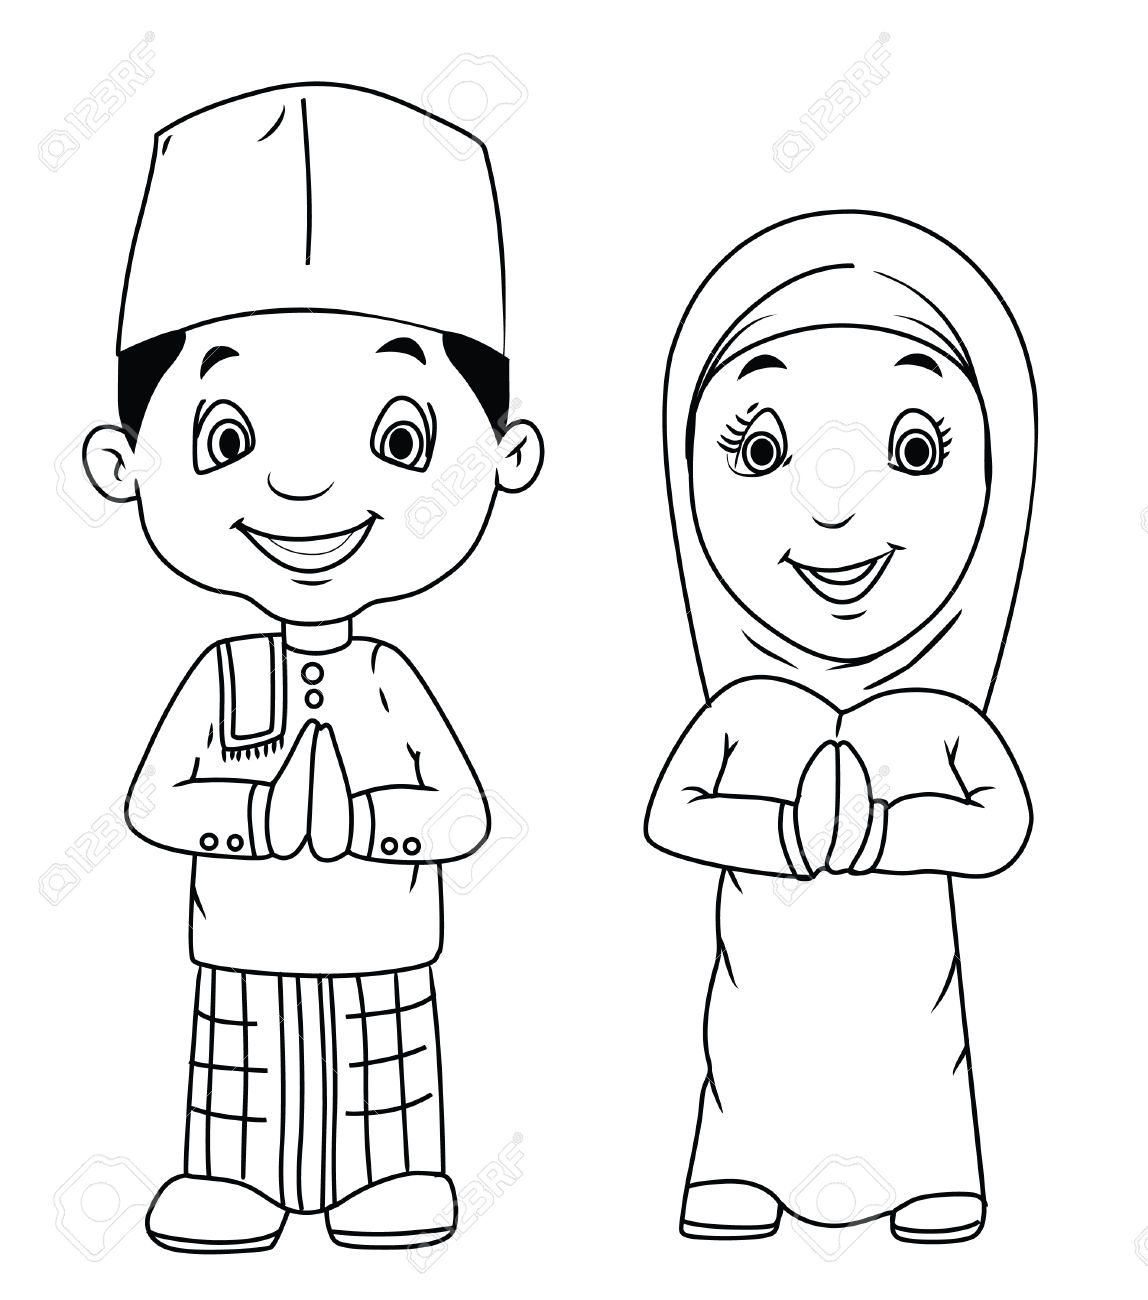 Islamic Clipart Black And White 4 Clipart Station